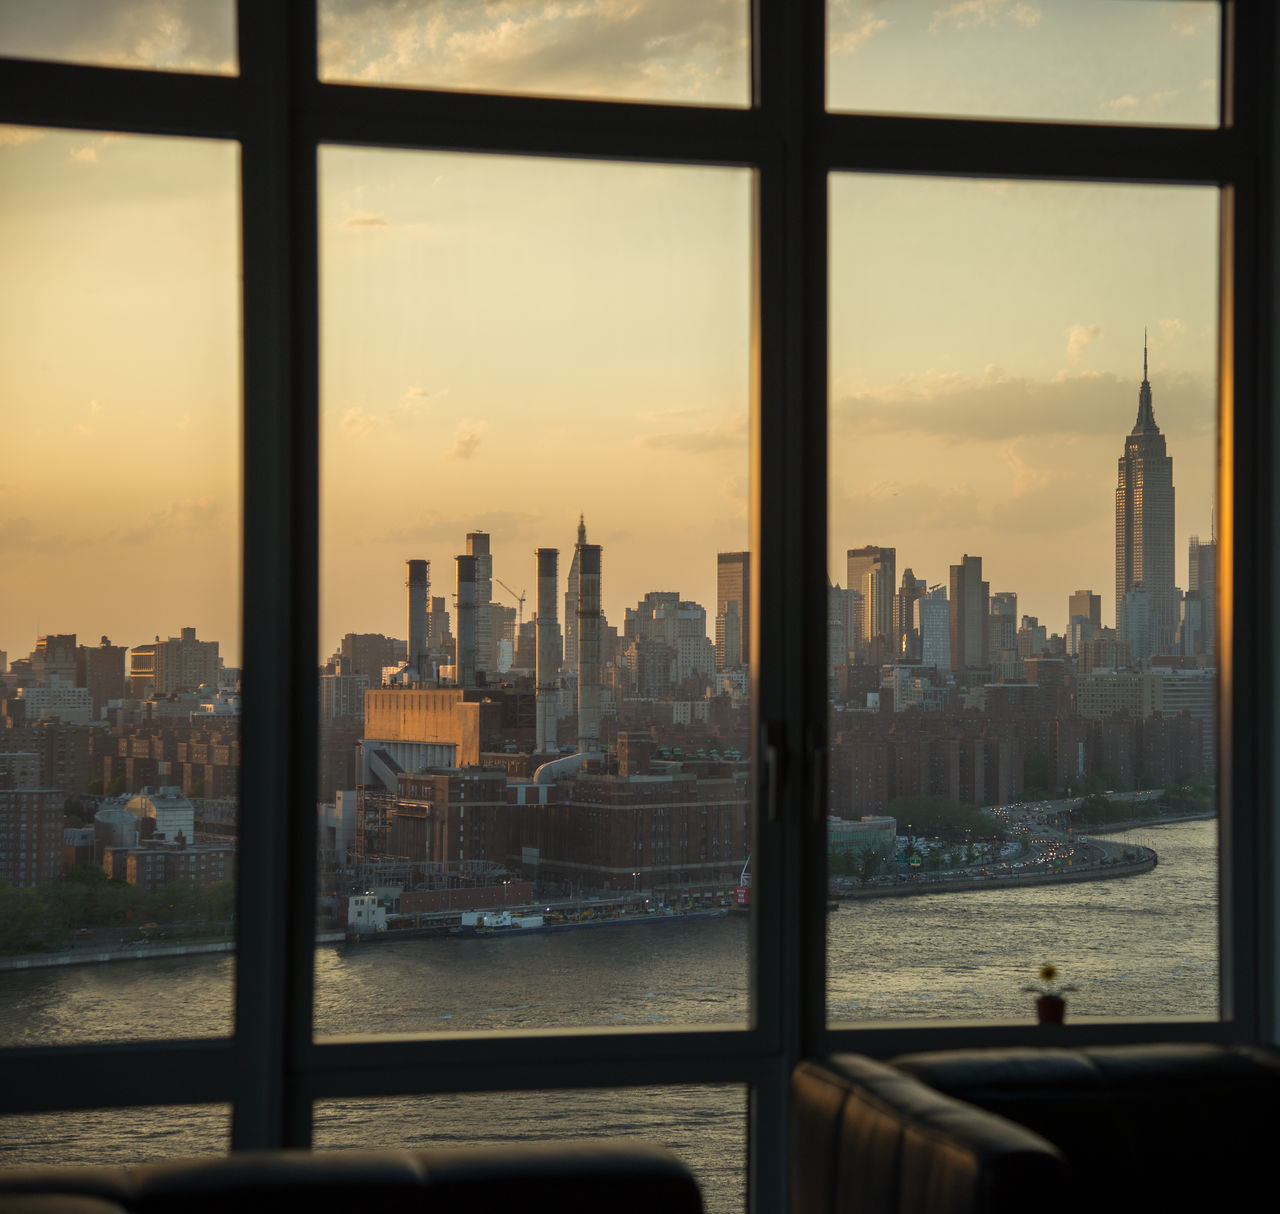 In Brooklyn looking at the Manhattan skyline at sunset Architecture City City Life Cityscape Empire State Building Framed From Brooklyn To Manhattan In Brooklyn Modern River Sky Skyline Skyscrapers Sunset Urban Skyline Waterfront Window Window View